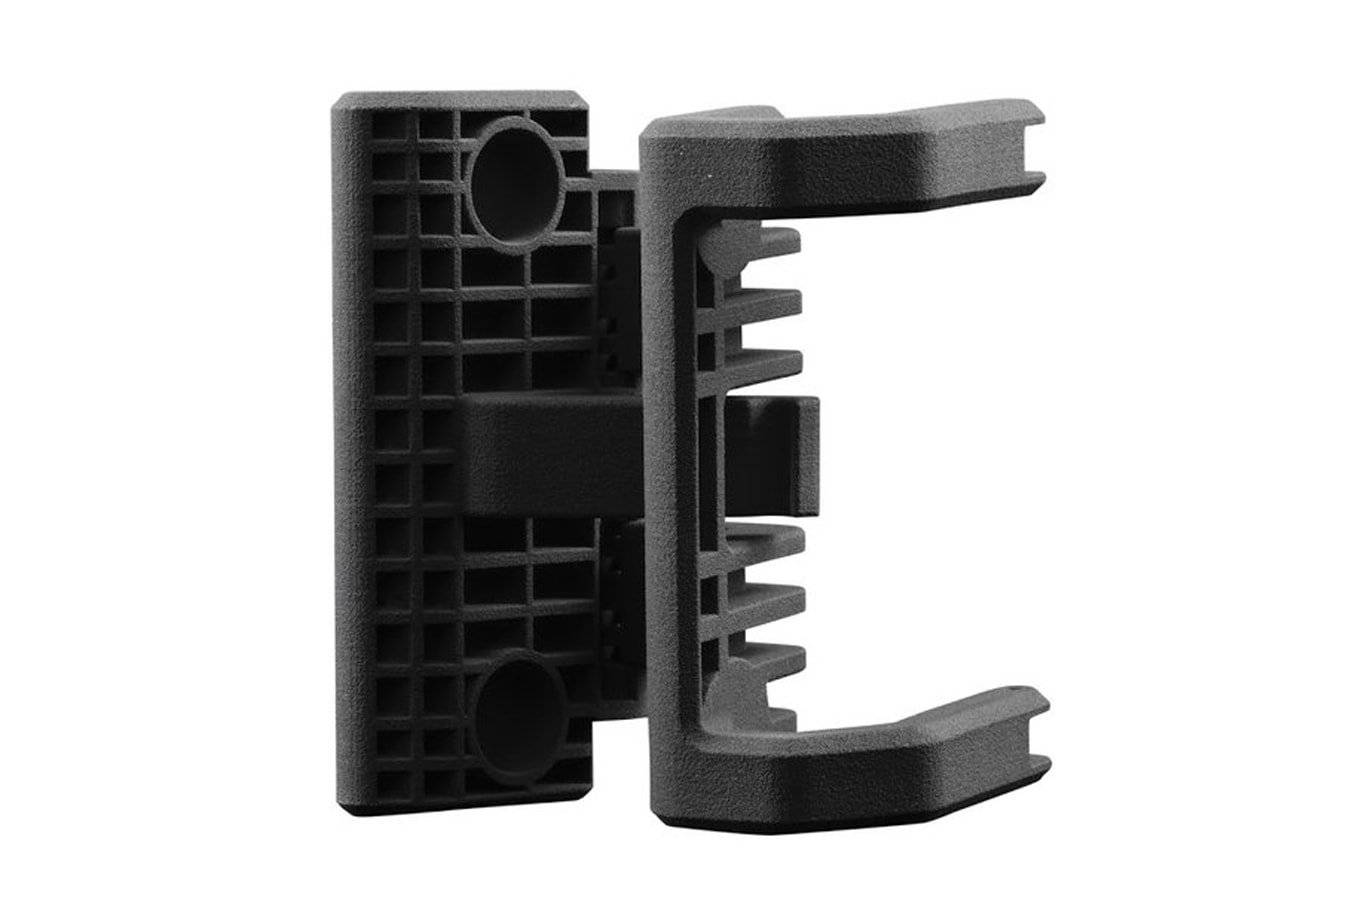 SLS 3D printed manufacturing part